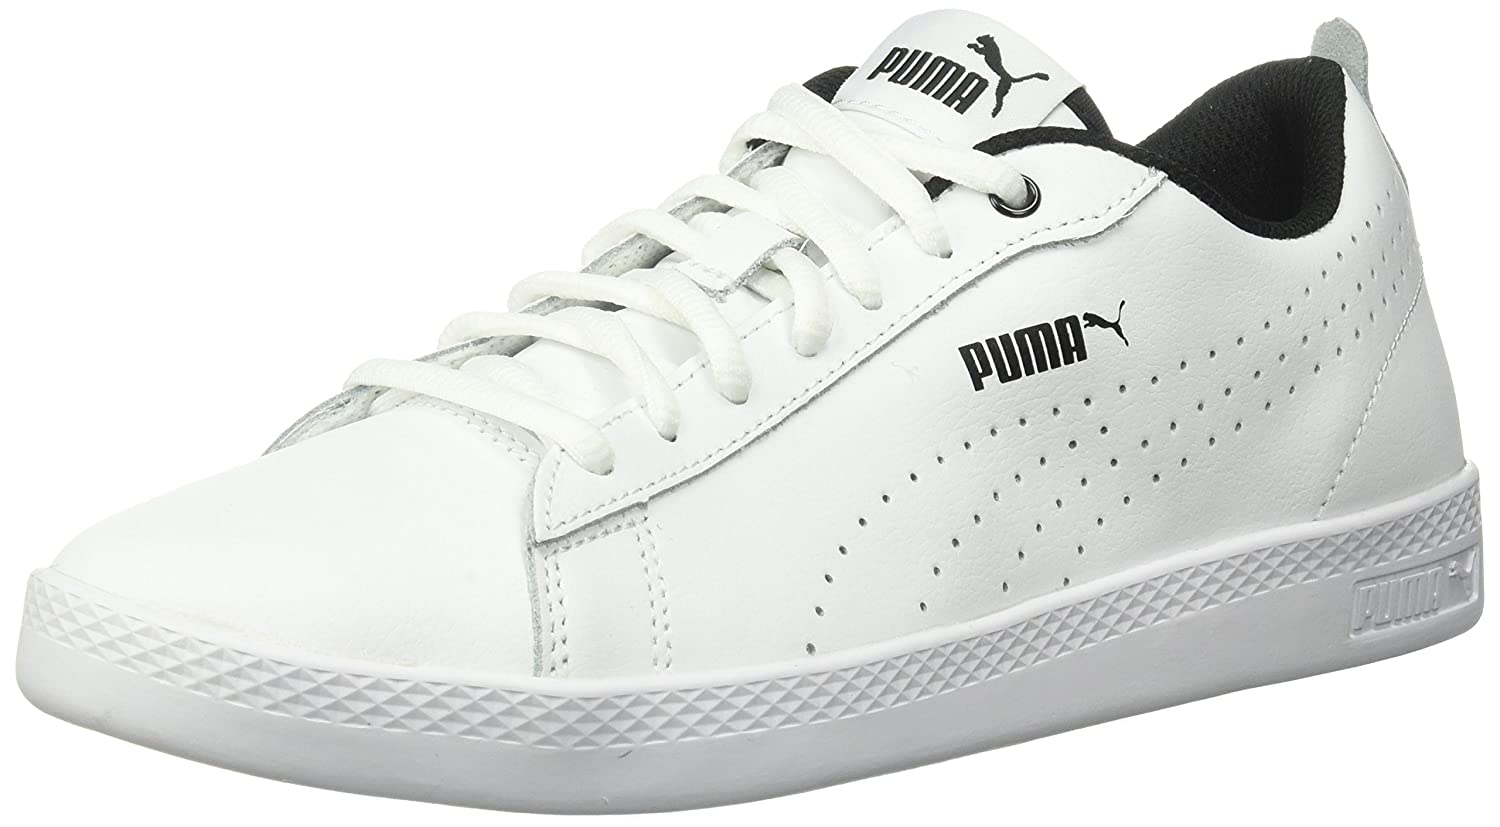 PUMA Women's Smash WNS v2 Leather Perf Sneaker B071K7RBV7 5.5 B(M) US|Puma White-puma White